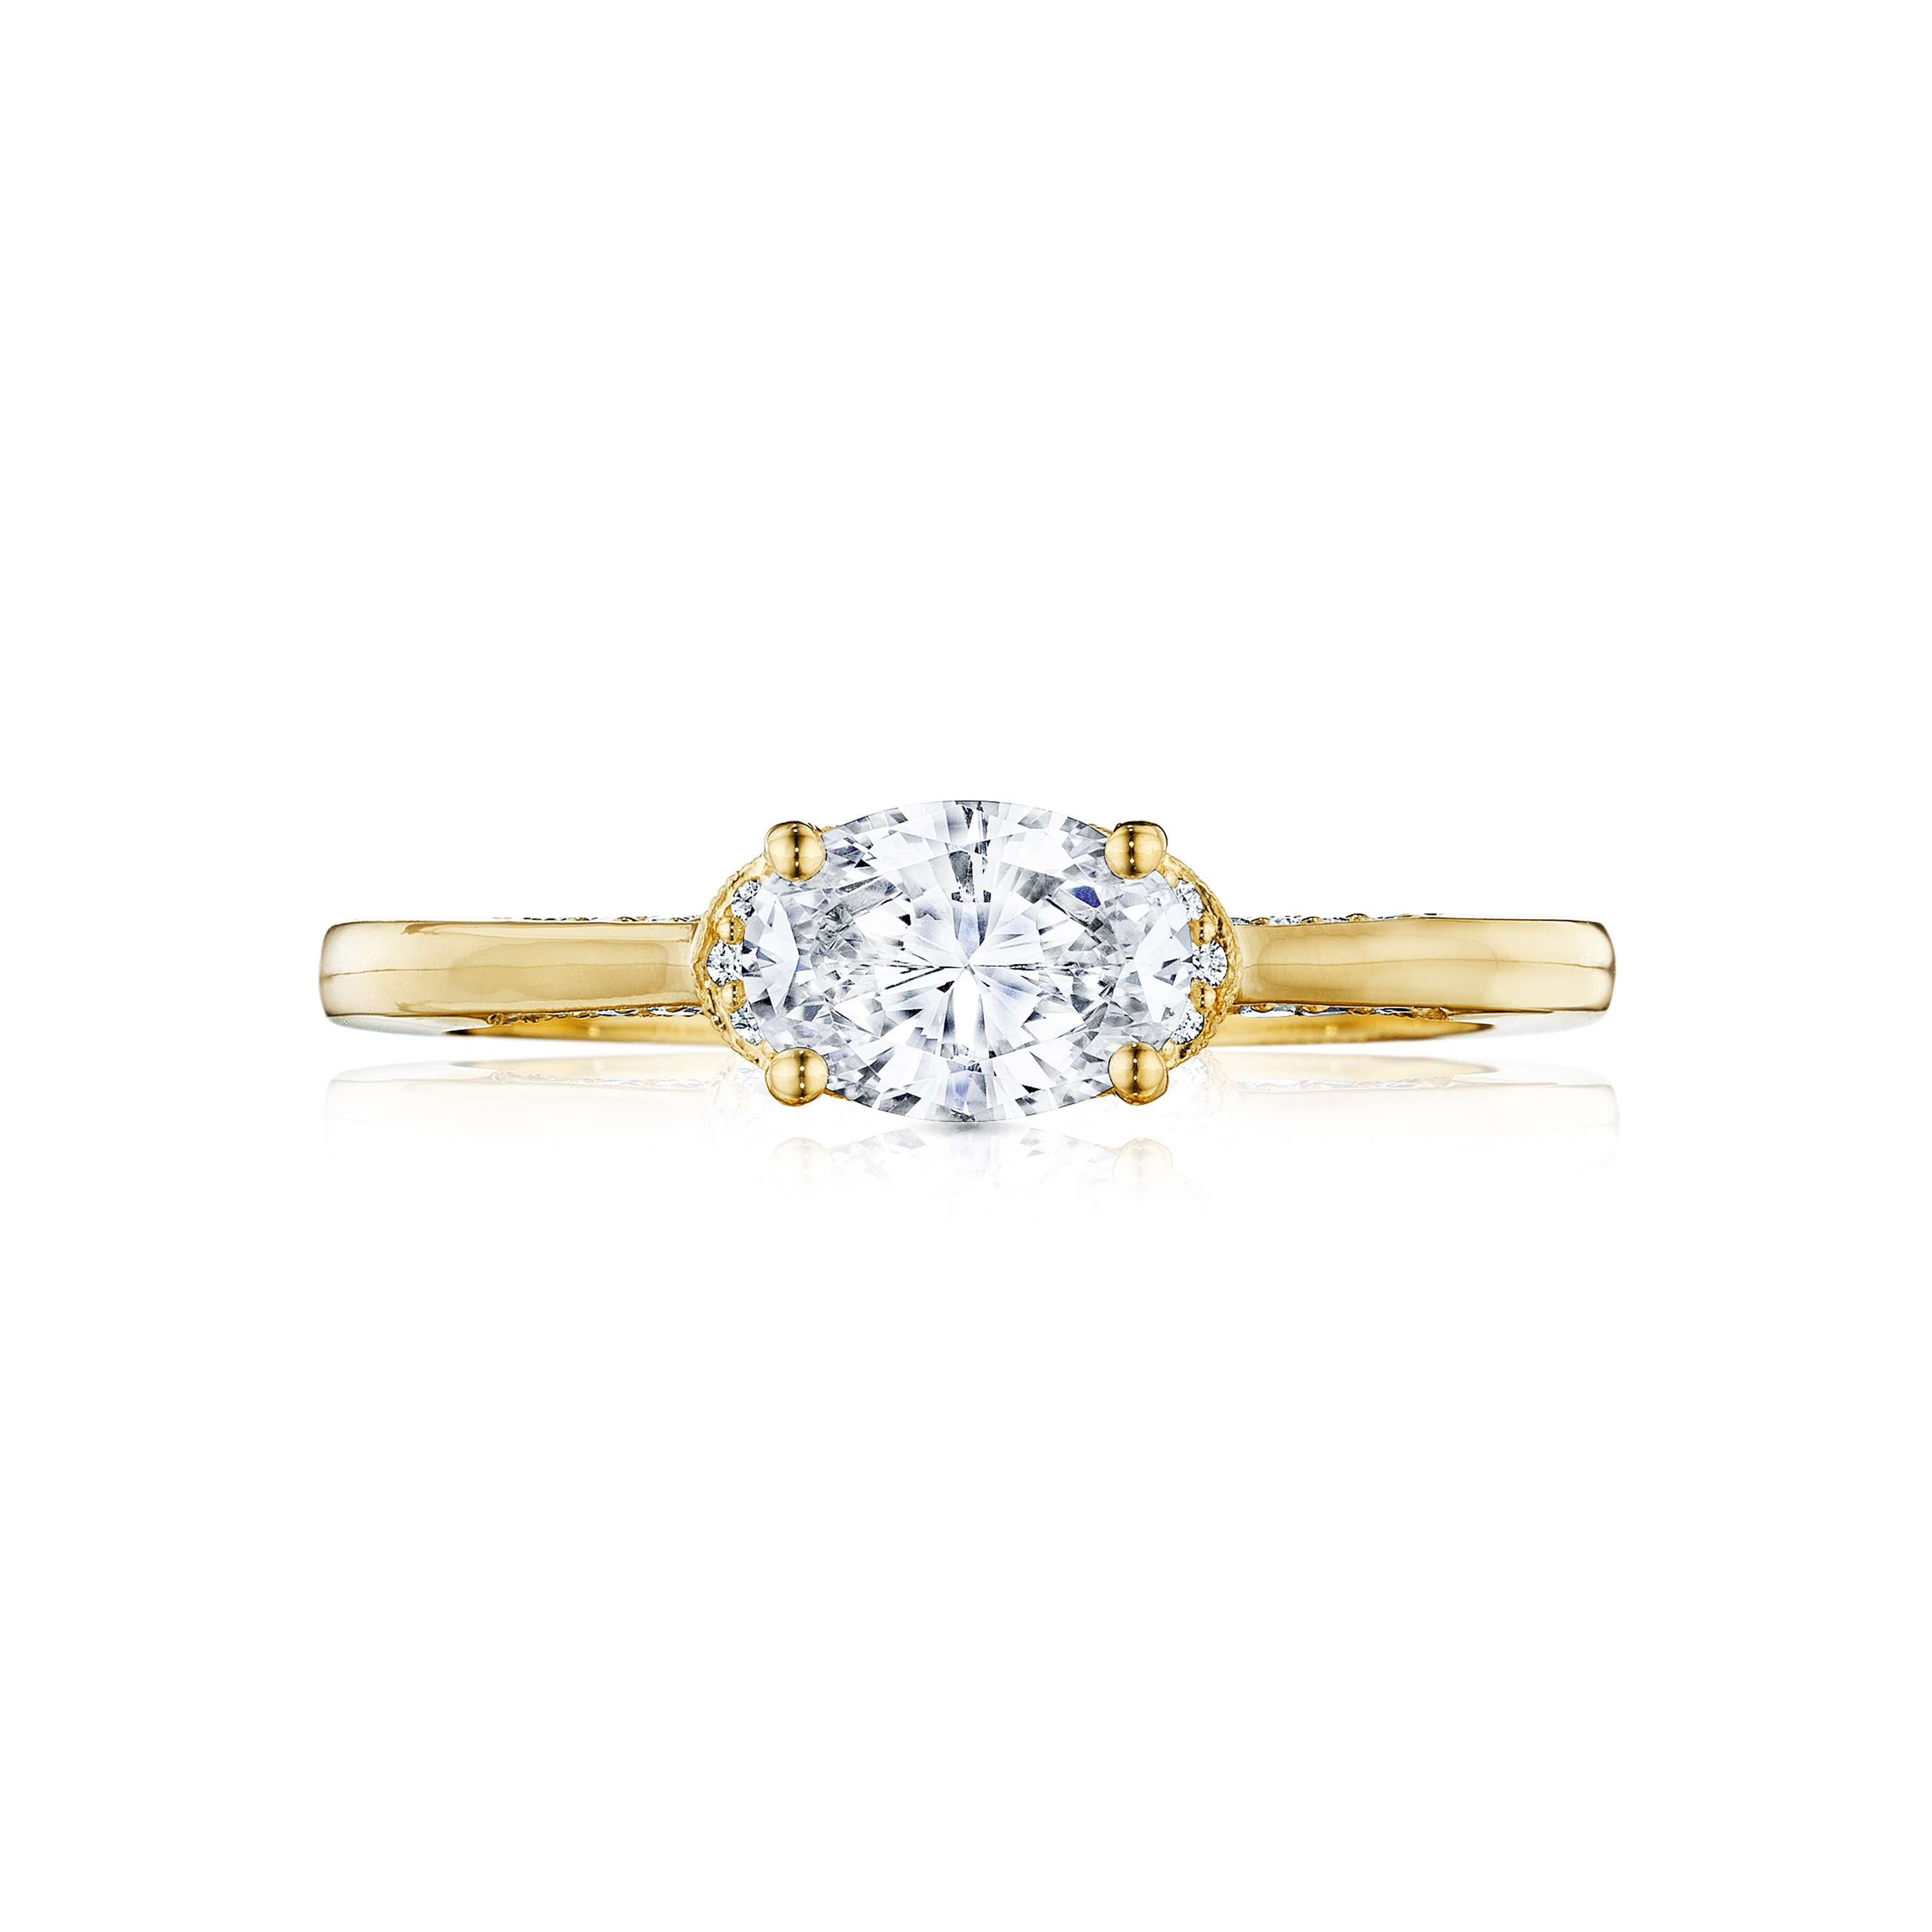 East-west oval diamond engagement ring with yellow gold band on a white background.